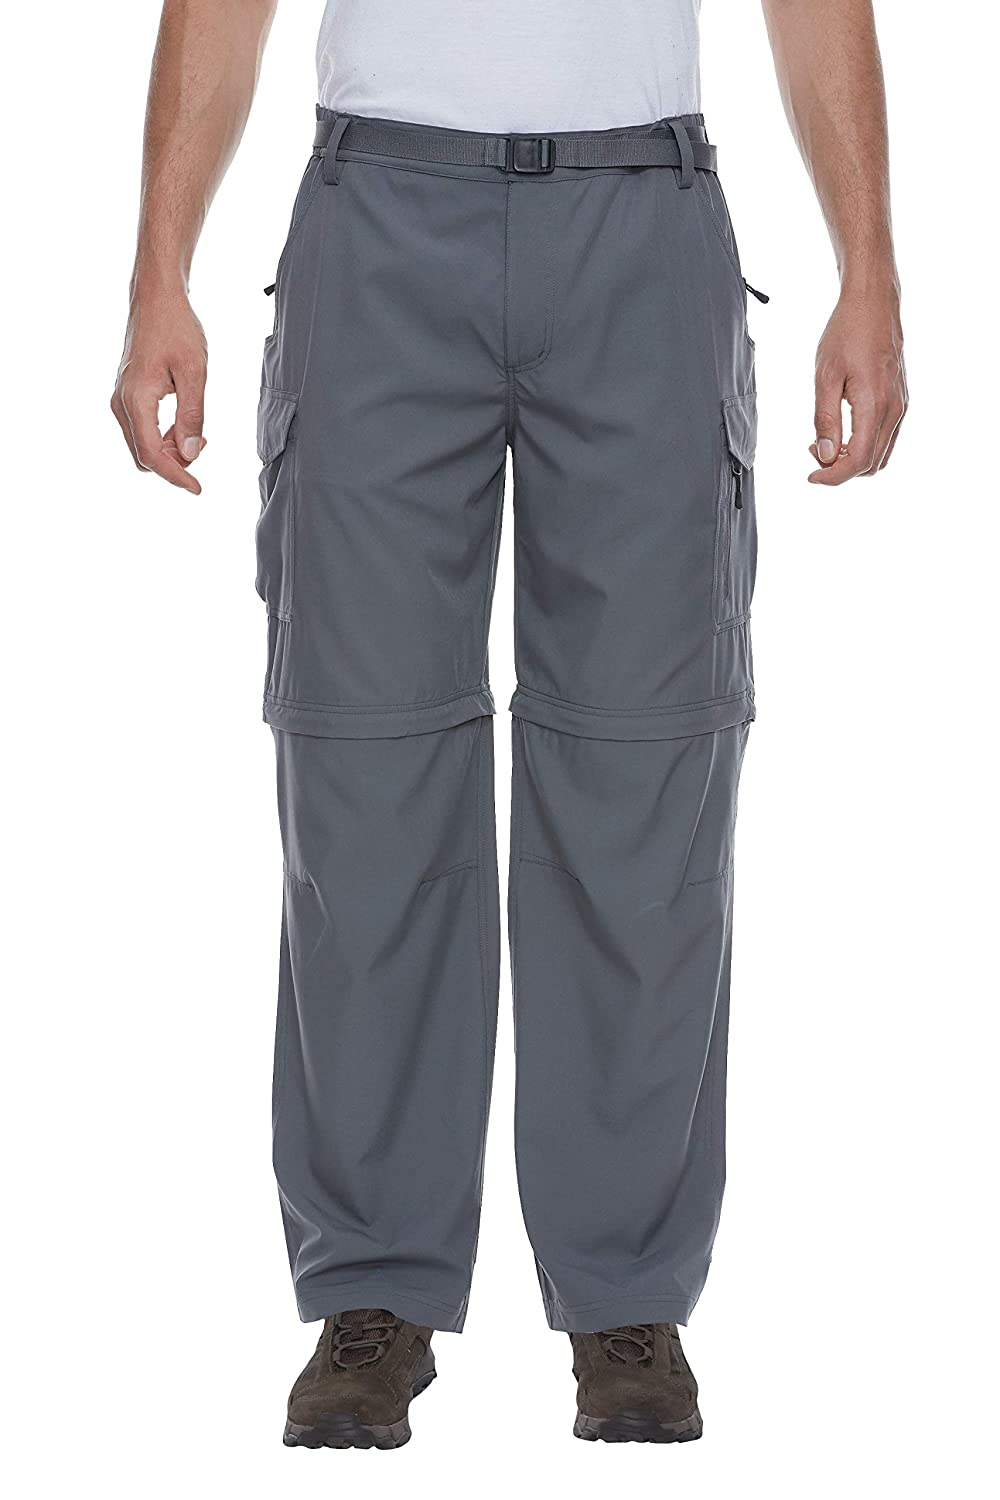 Travel LDA Little Donkey Andy Mens Stretch Convertible Pants Zip-Off Quick Dry Pants for Hiking